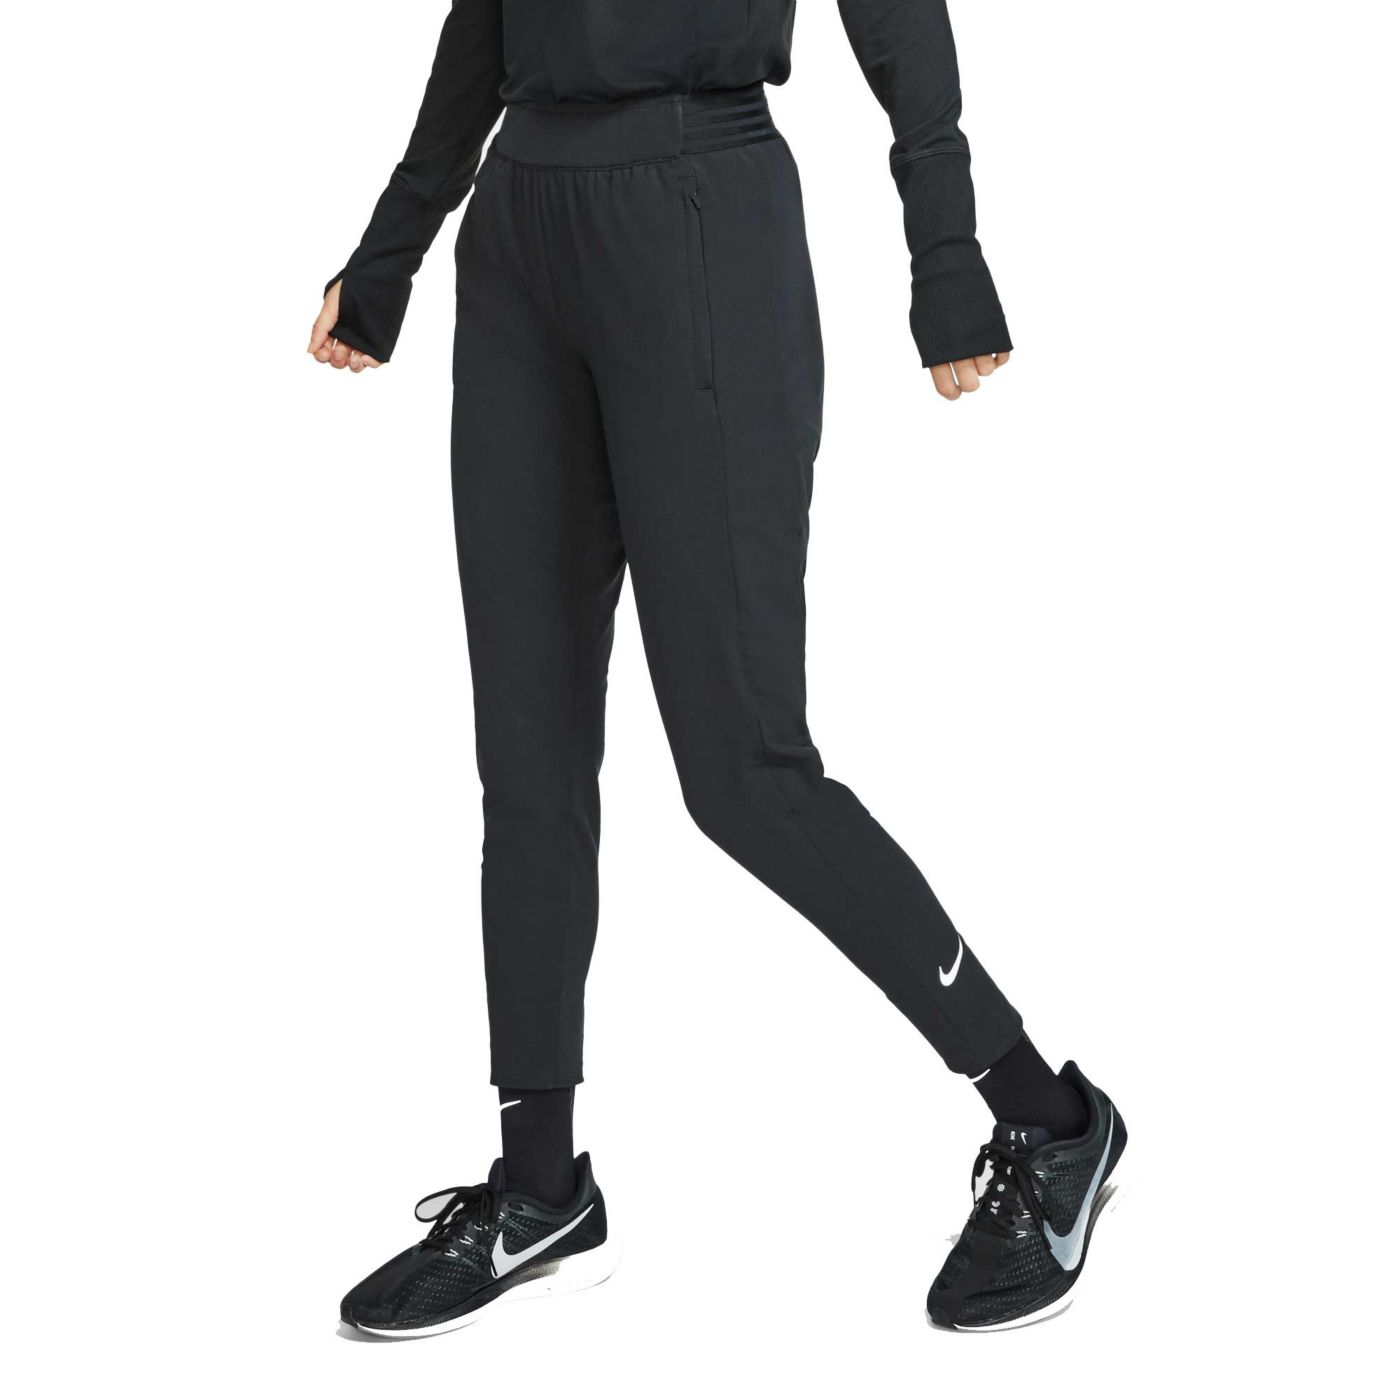 Nike Women's Essential Warm Running Pants